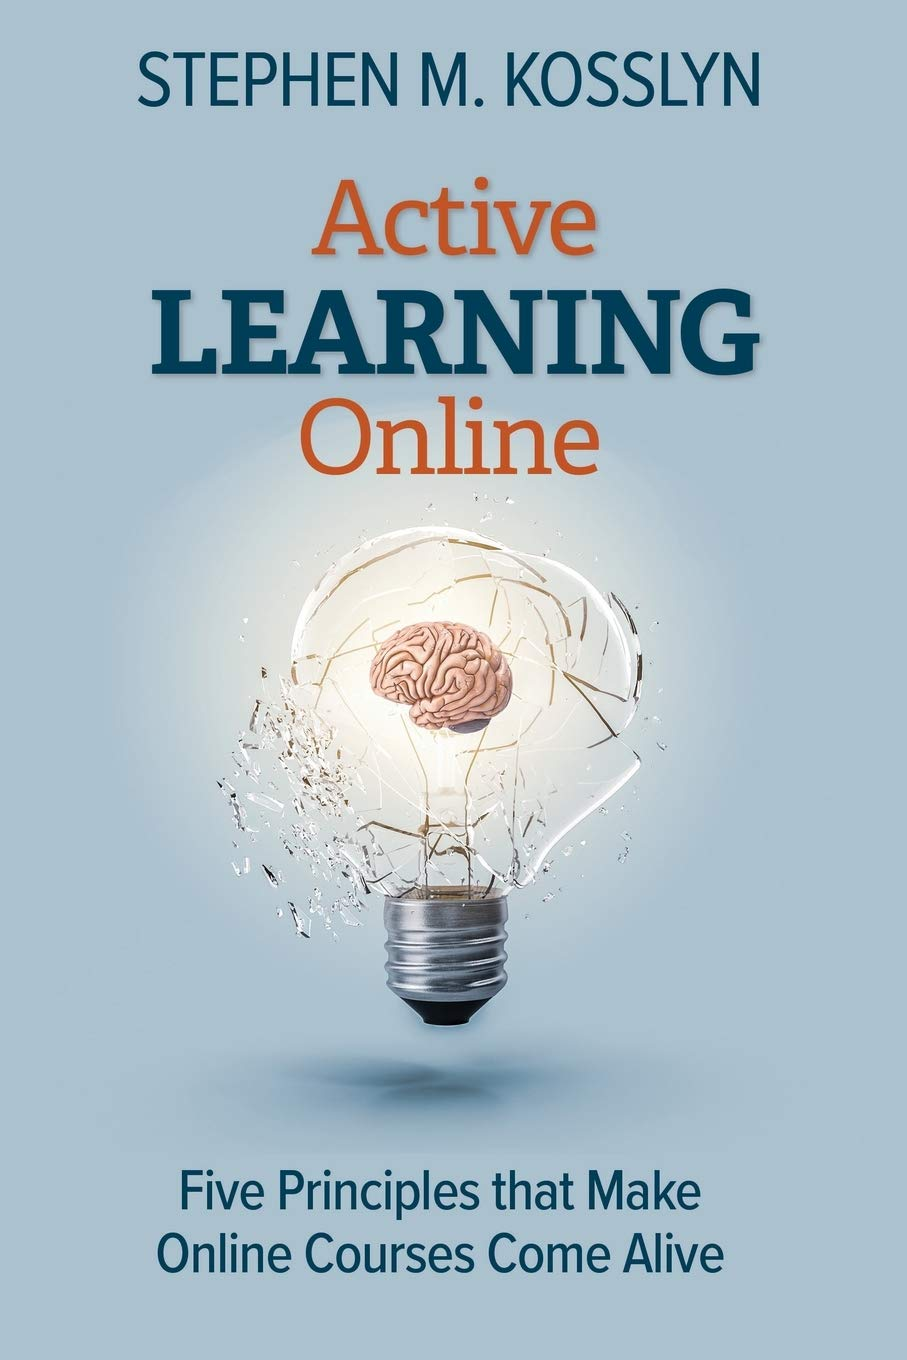 An Interview with Stephen M. Kosslyn: Active Learning Online